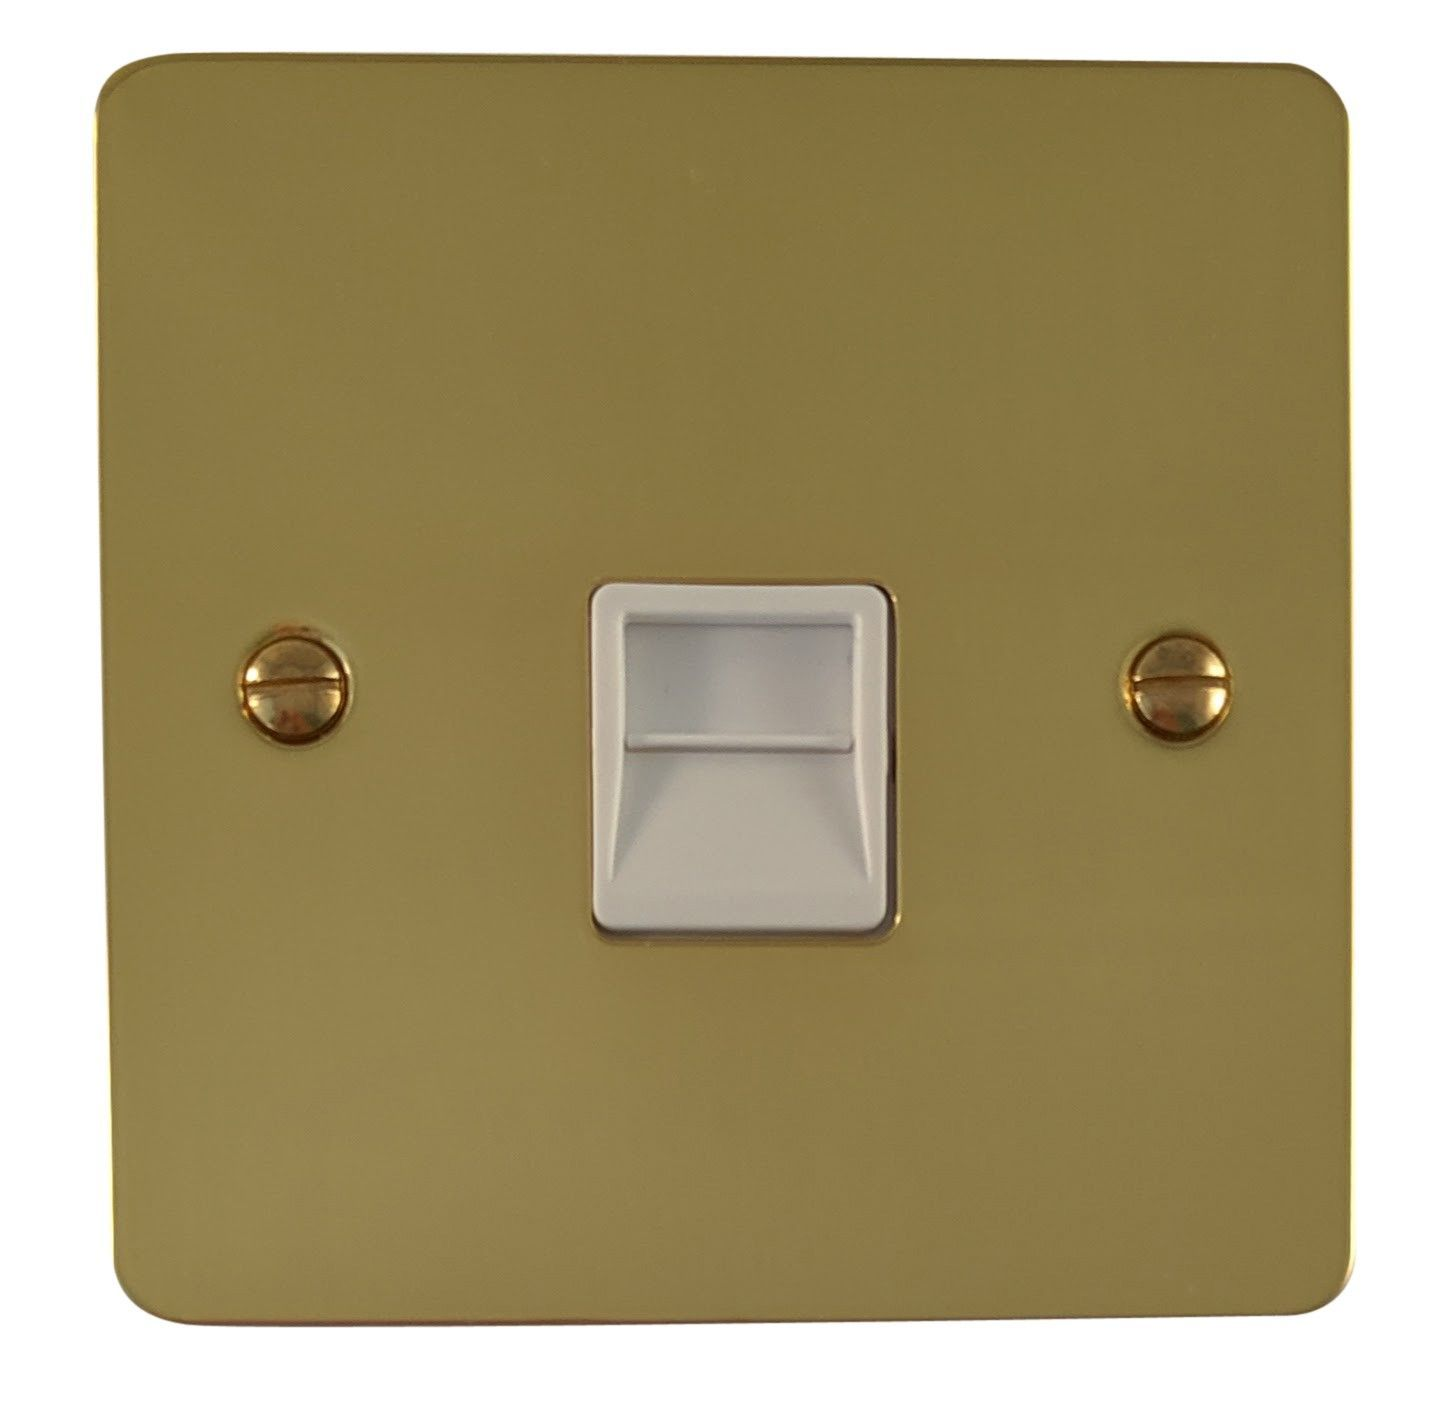 G&H FB33W Flat Plate Polished Brass 1 Gang Master BT Telephone Socket